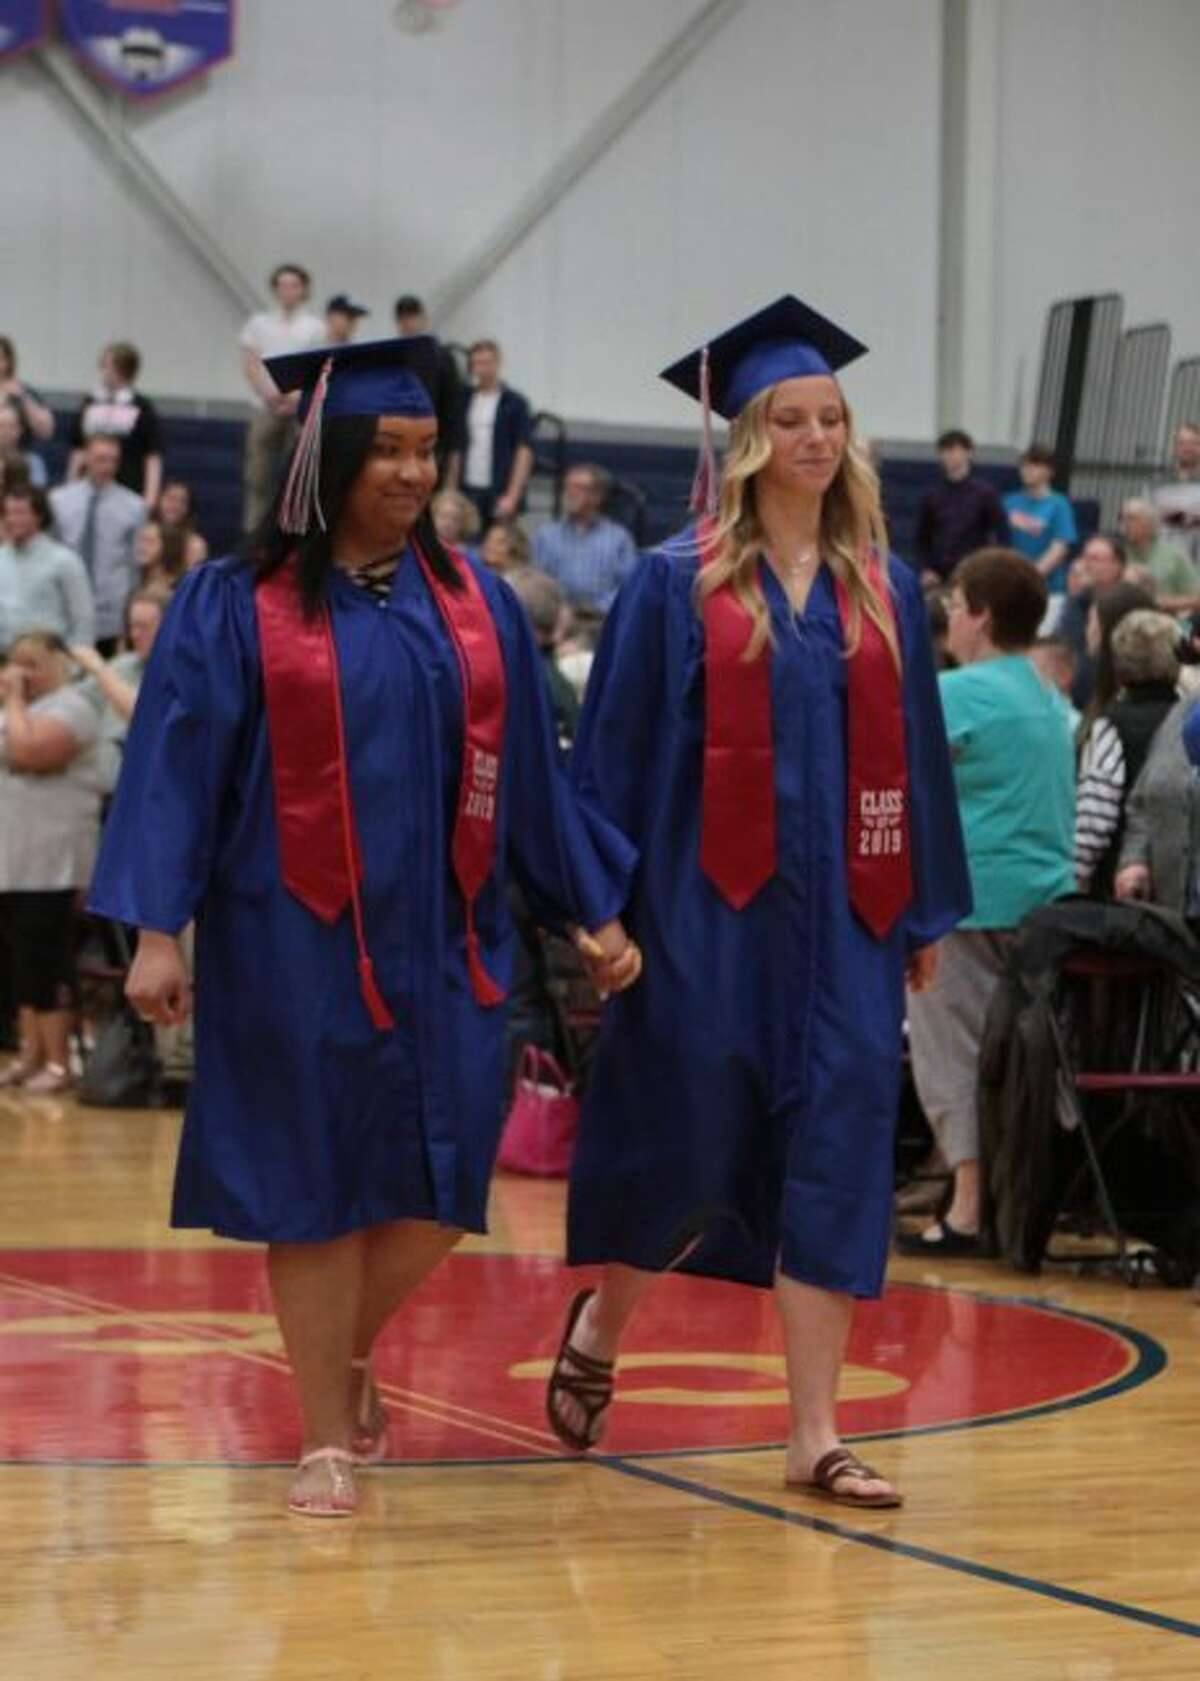 Students of Crossroads Charter Academy make their way into the high school gym to partake in the graduation ceremonies.